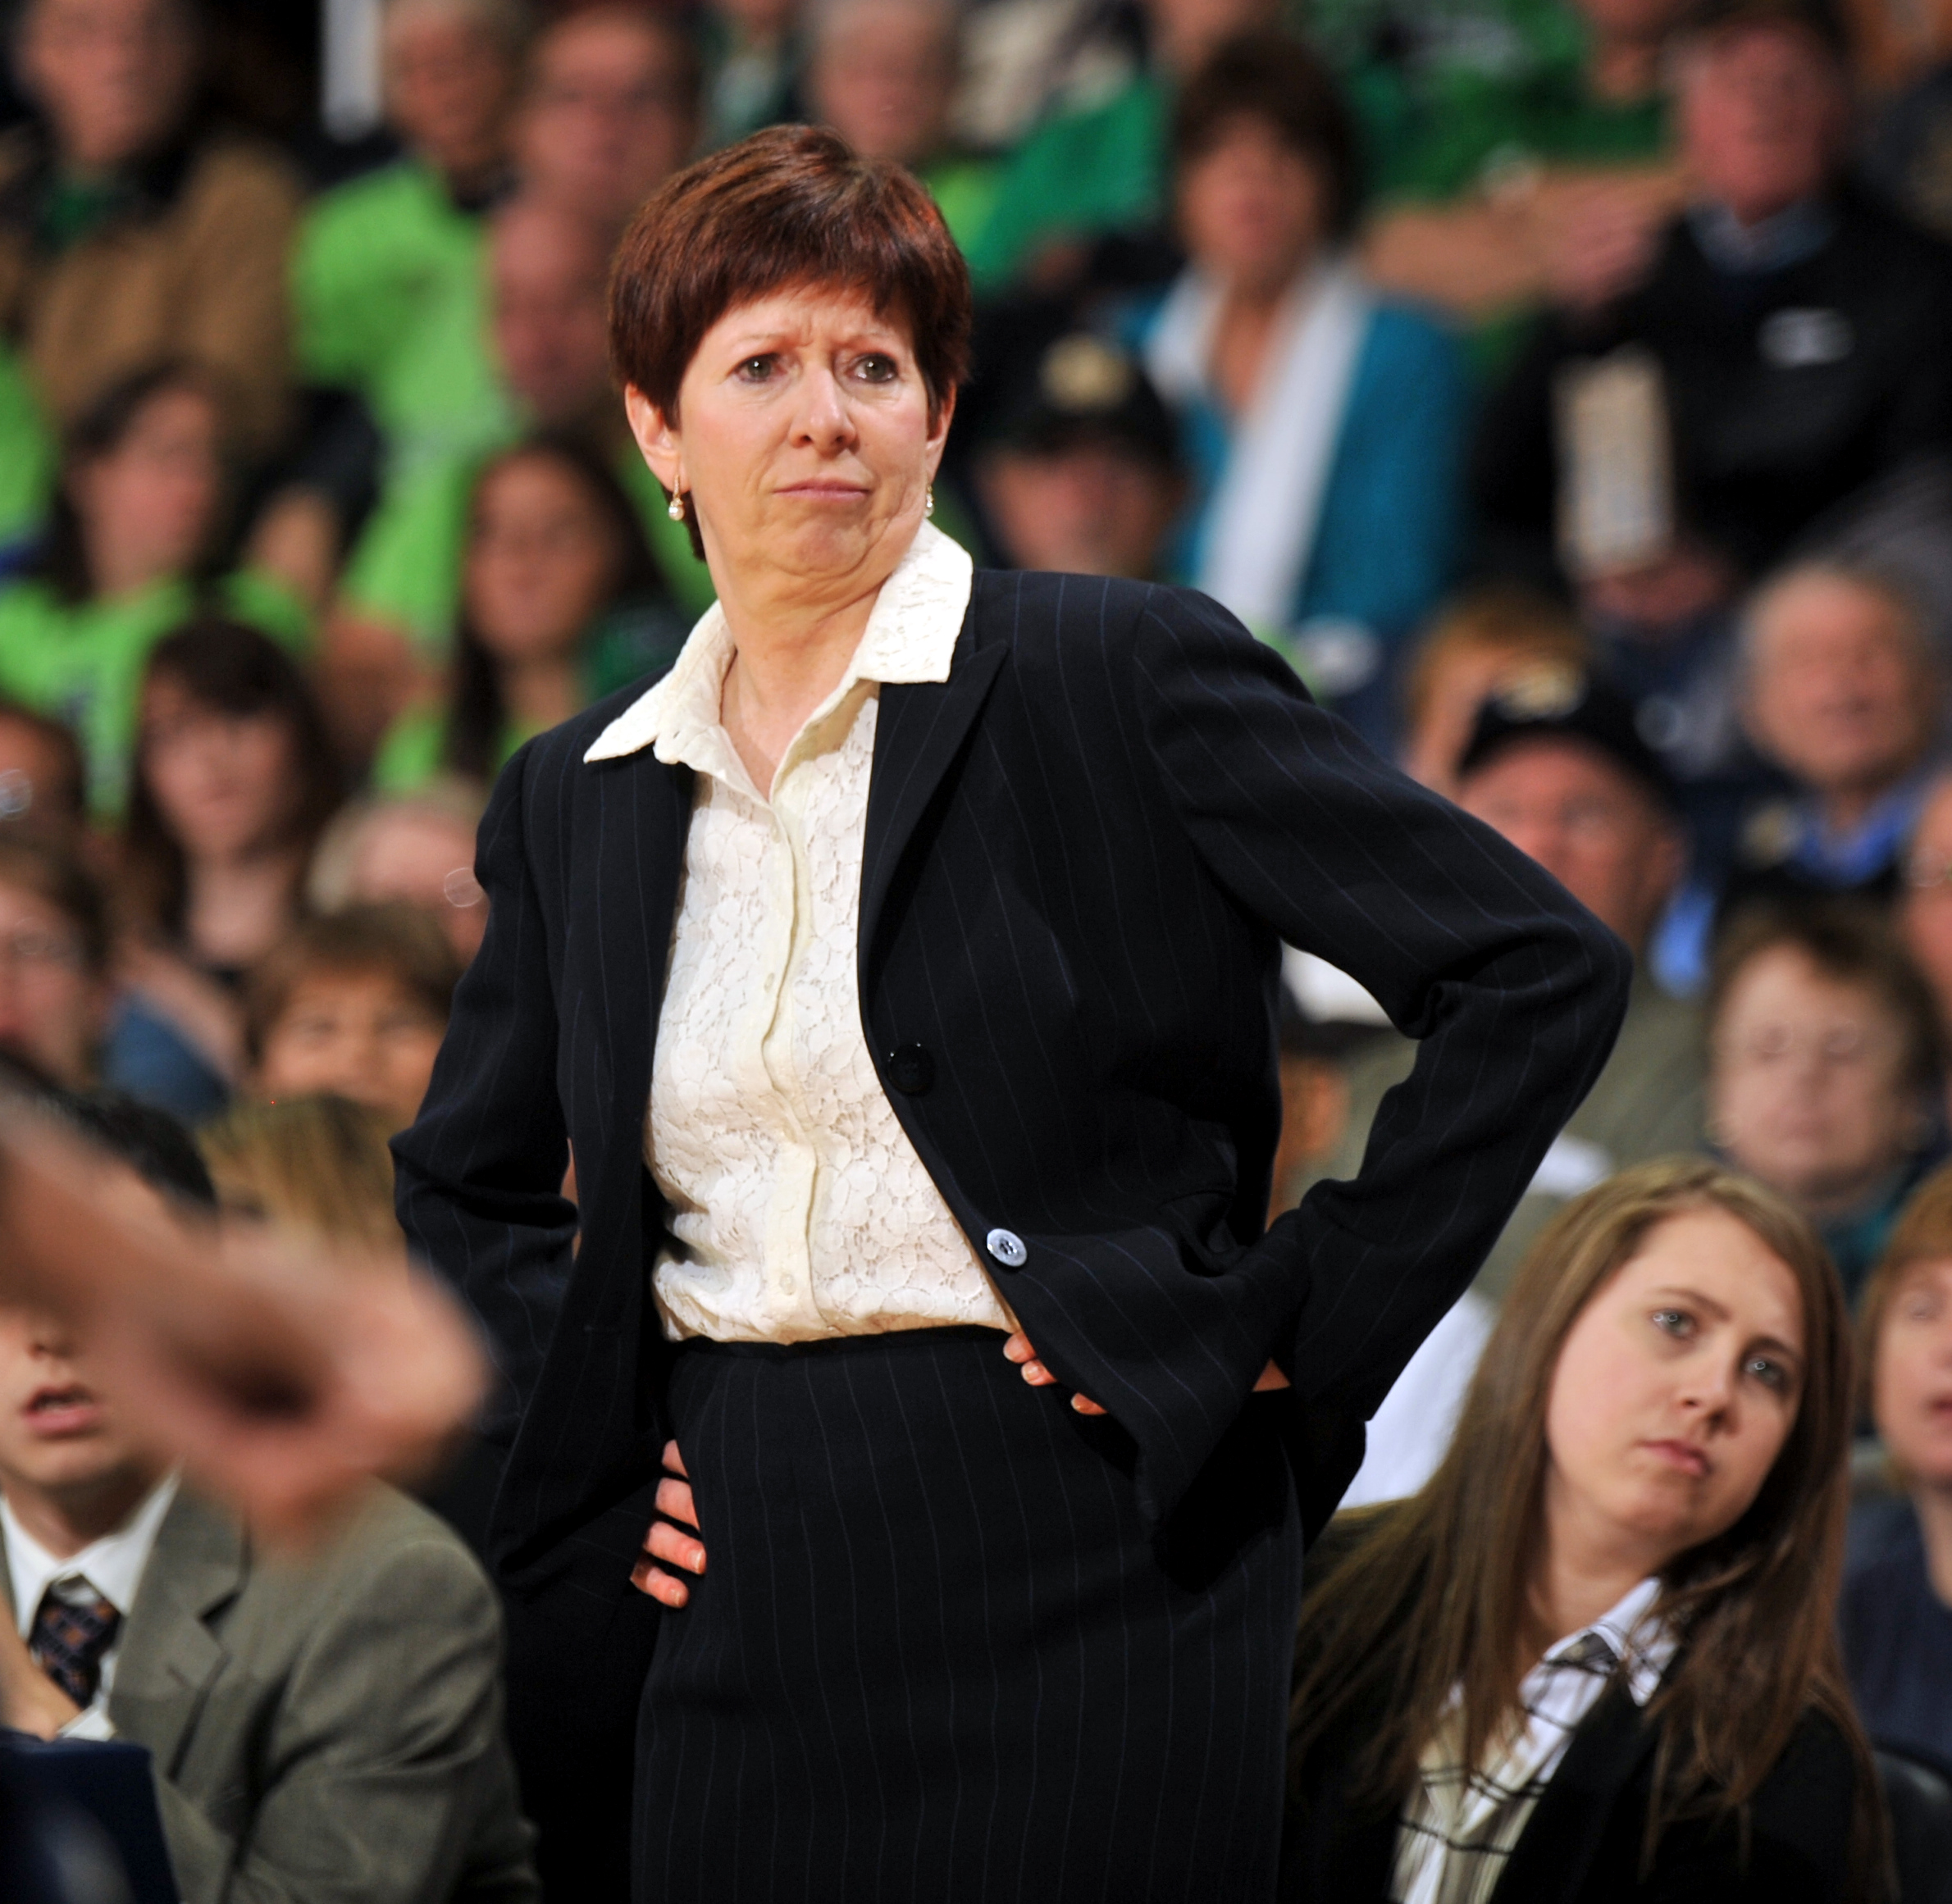 Notre Dame coach Muffet McGraw reacts in the second half of an NCAA college basketball game against Georgia Tech, Wednesday, Dec. 30, 2015, in South Bend, Ind. (AP Photo/Joe Raymond)